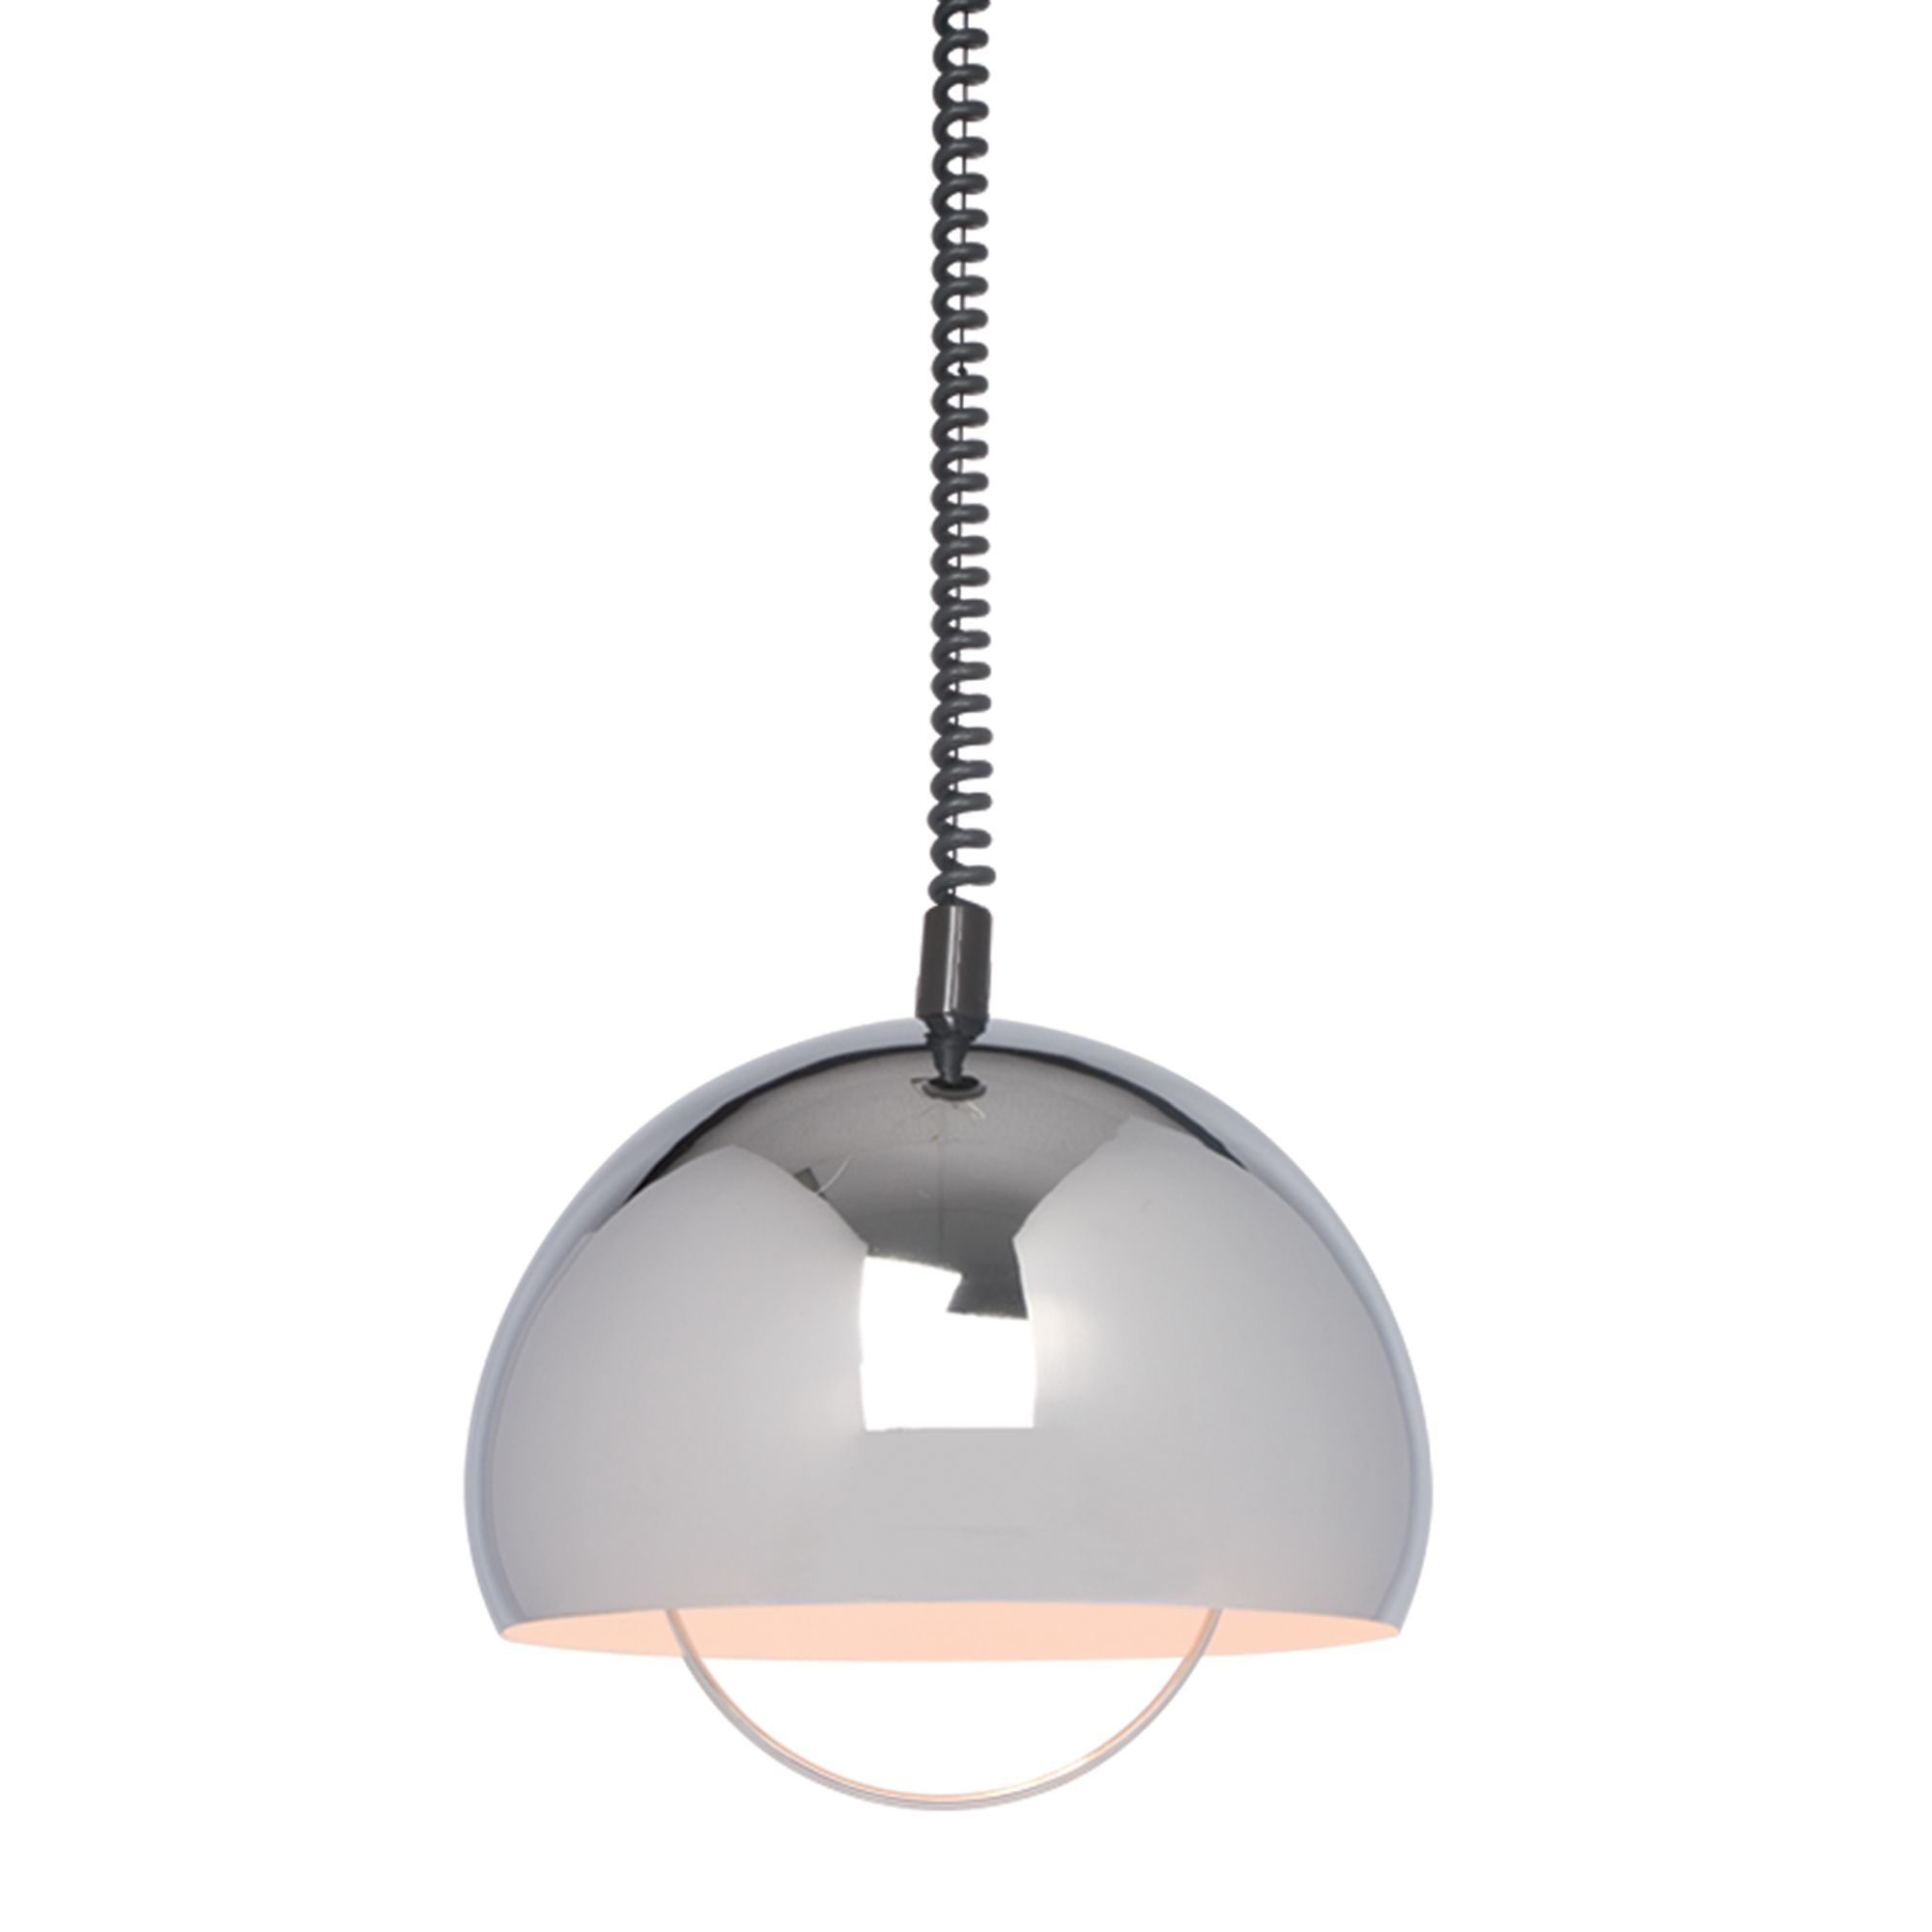 Rise and fall pendant light ikea 15 collection of rise and fall pendant lights ciara faceted chrome effect pendant ceiling light aloadofball Choice Image